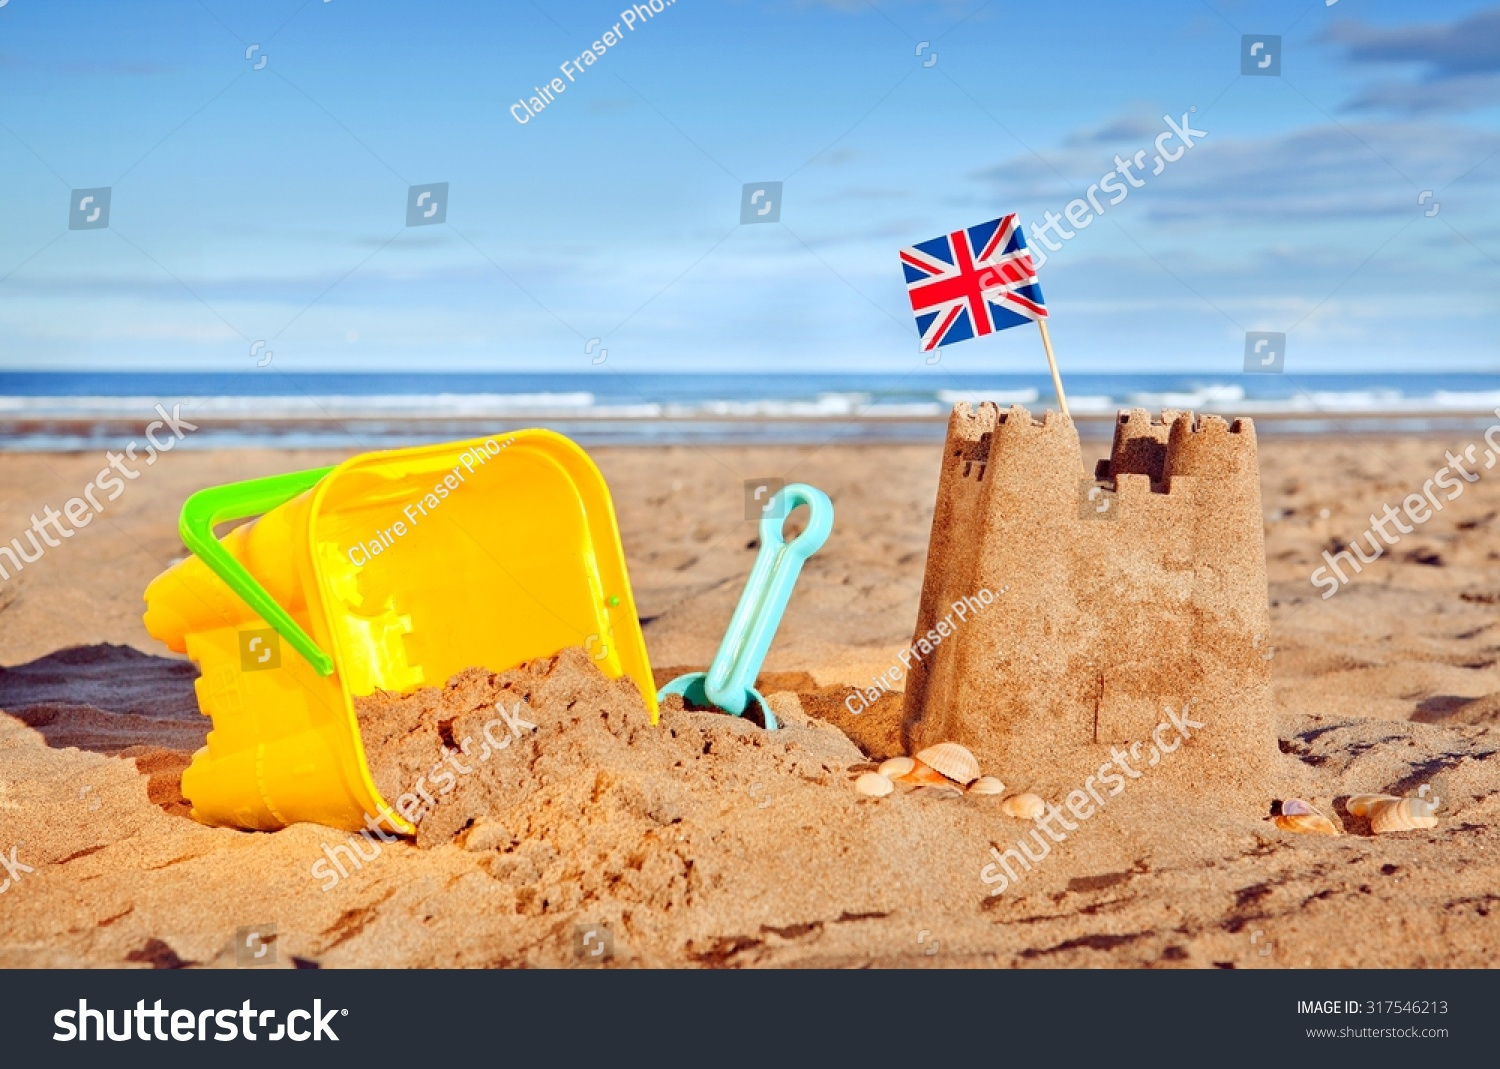 http://image.shutterstock.com/z/stock-photo-british-seaside-traditional-sand-castle-on-the-beach-with-bucket-and-spade-shells-and-union-jack-317546213.jpg